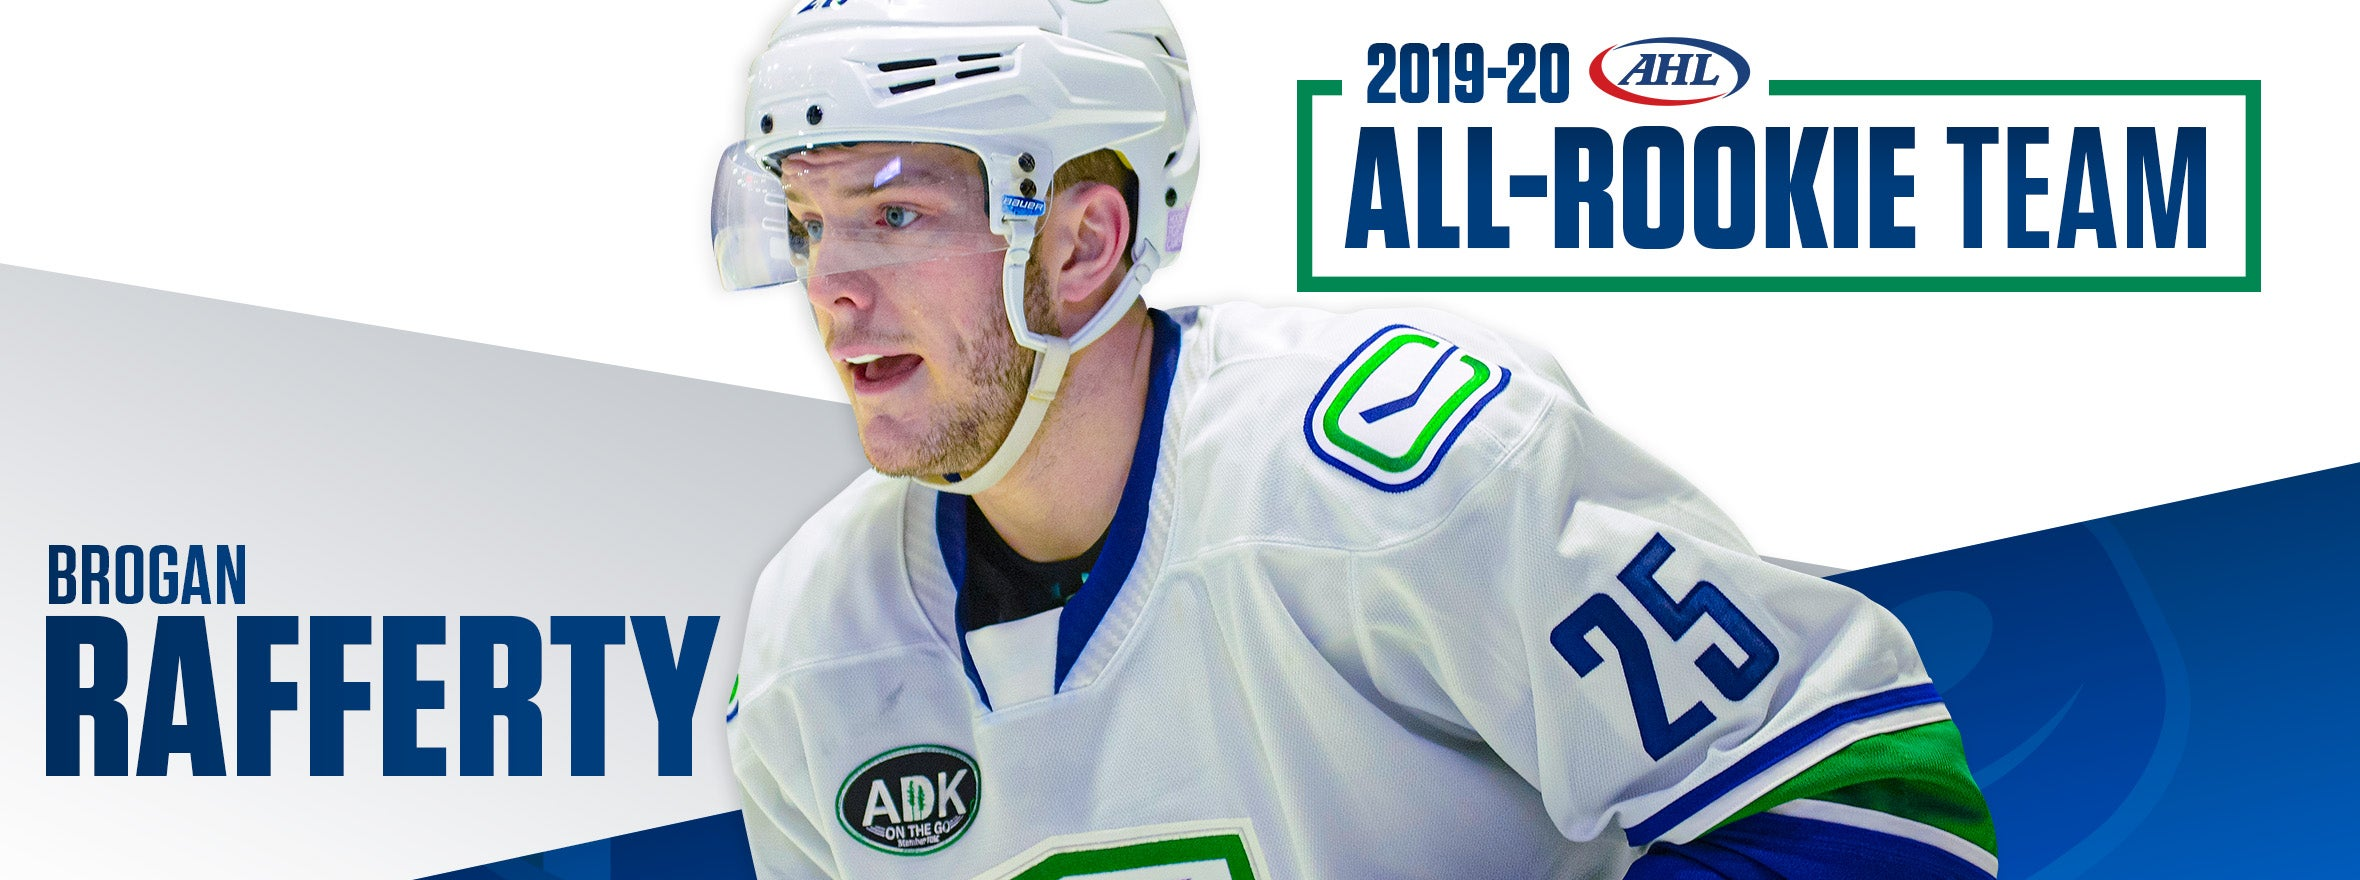 RAFFERTY NAMED TO AHL ALL-ROOKIE TEAM